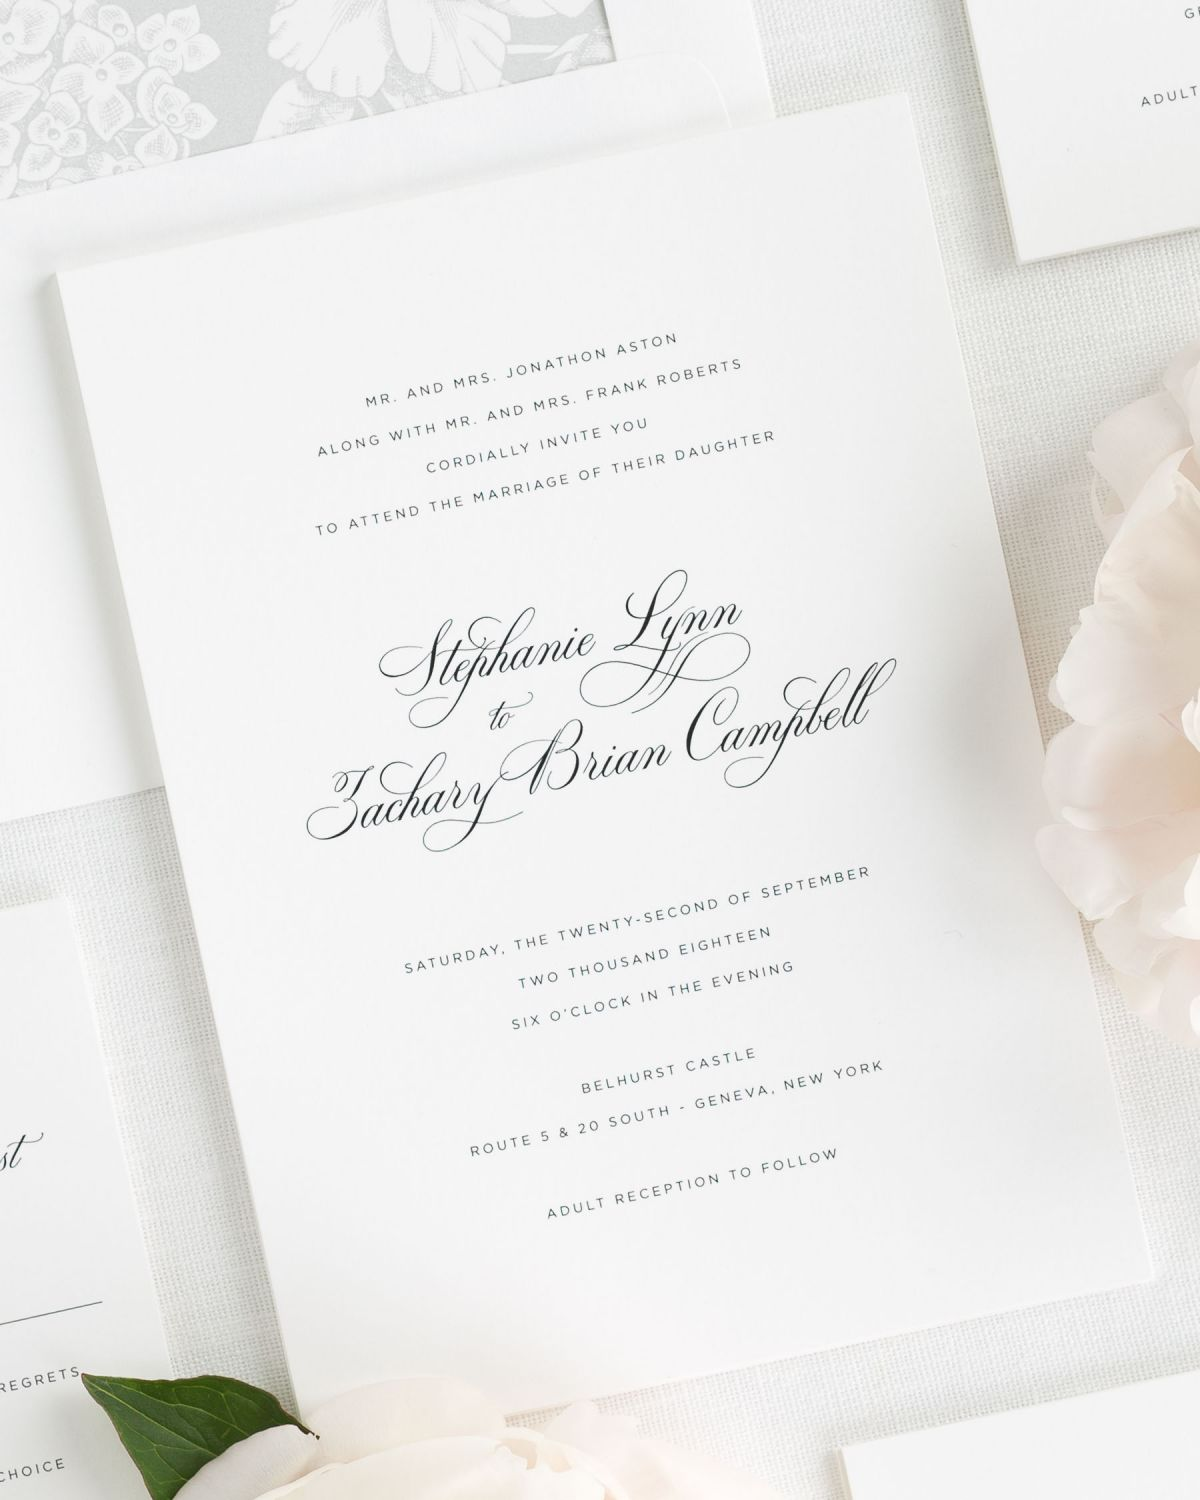 wedding invitations - Simple Elegant Wedding Invitations